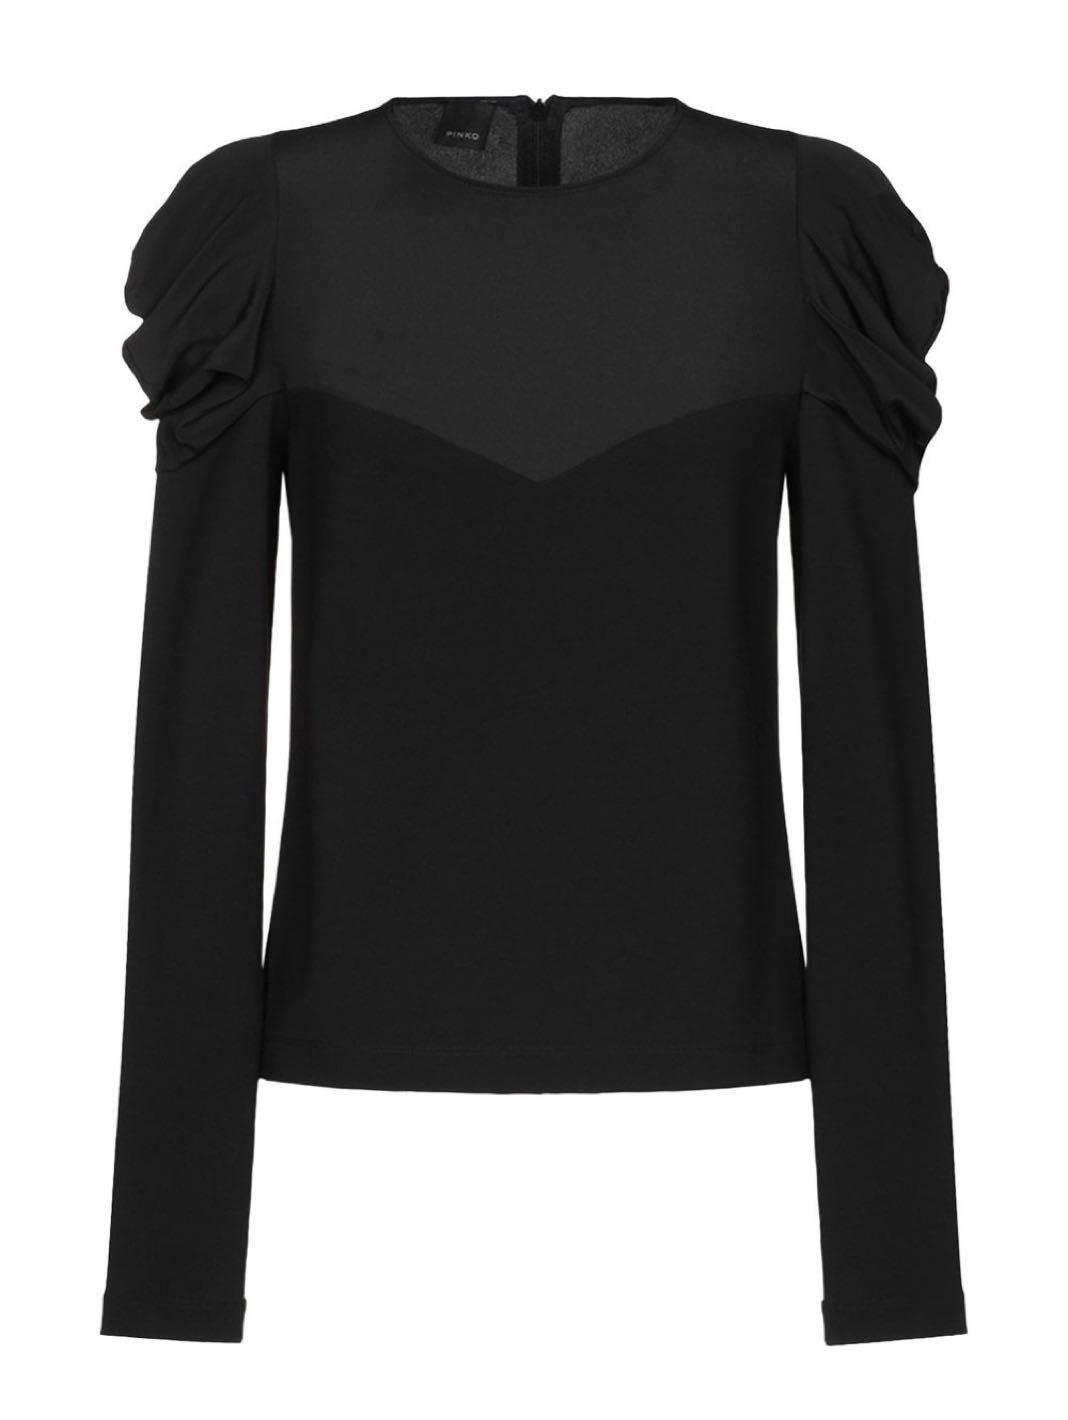 Antira Jersey Crepé Blouse - The Bobby Boga